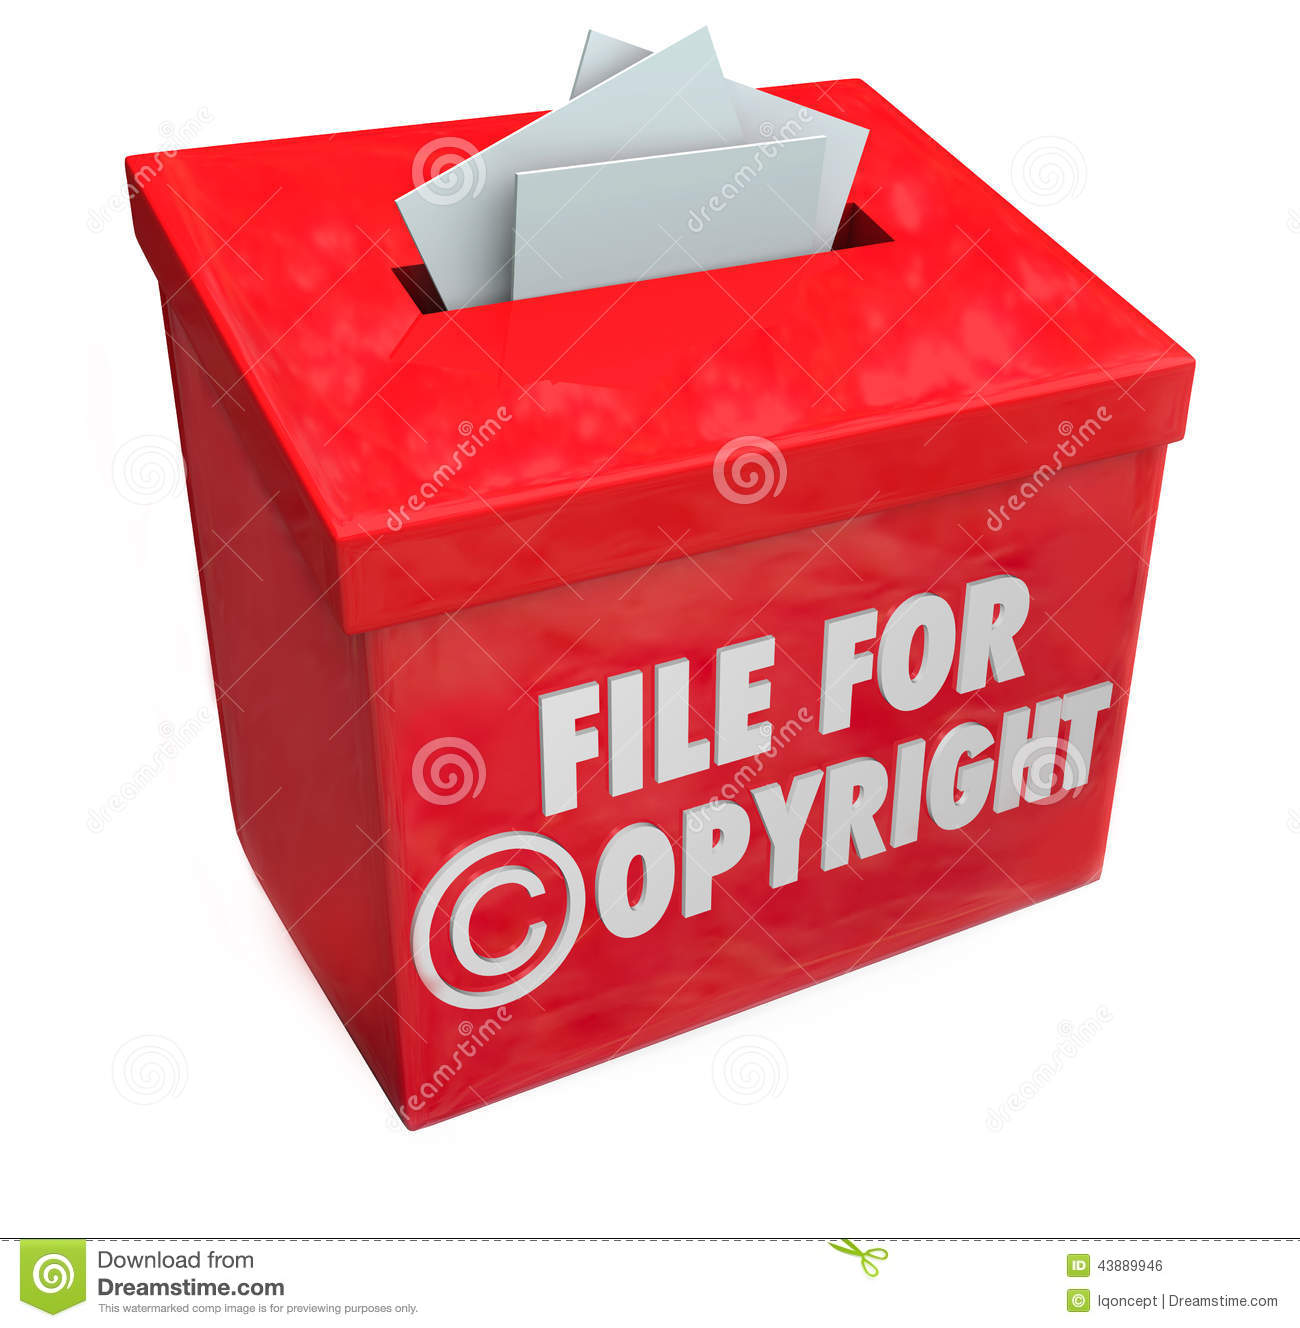 Intellectual Property Protection: File For Copyright Red 3d Entry Box Intellectual Property